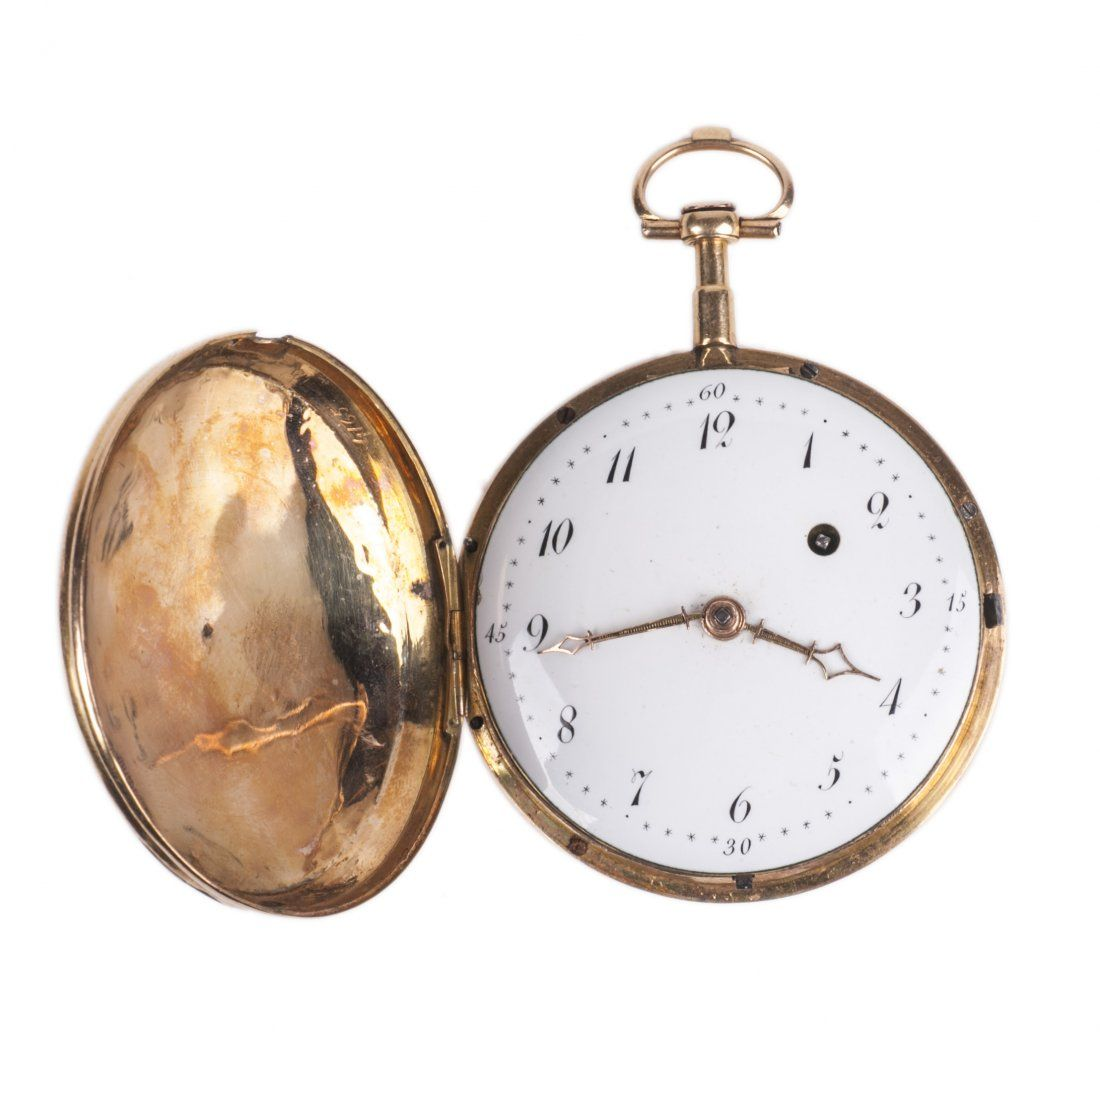 18K gold hunter case pocket watch